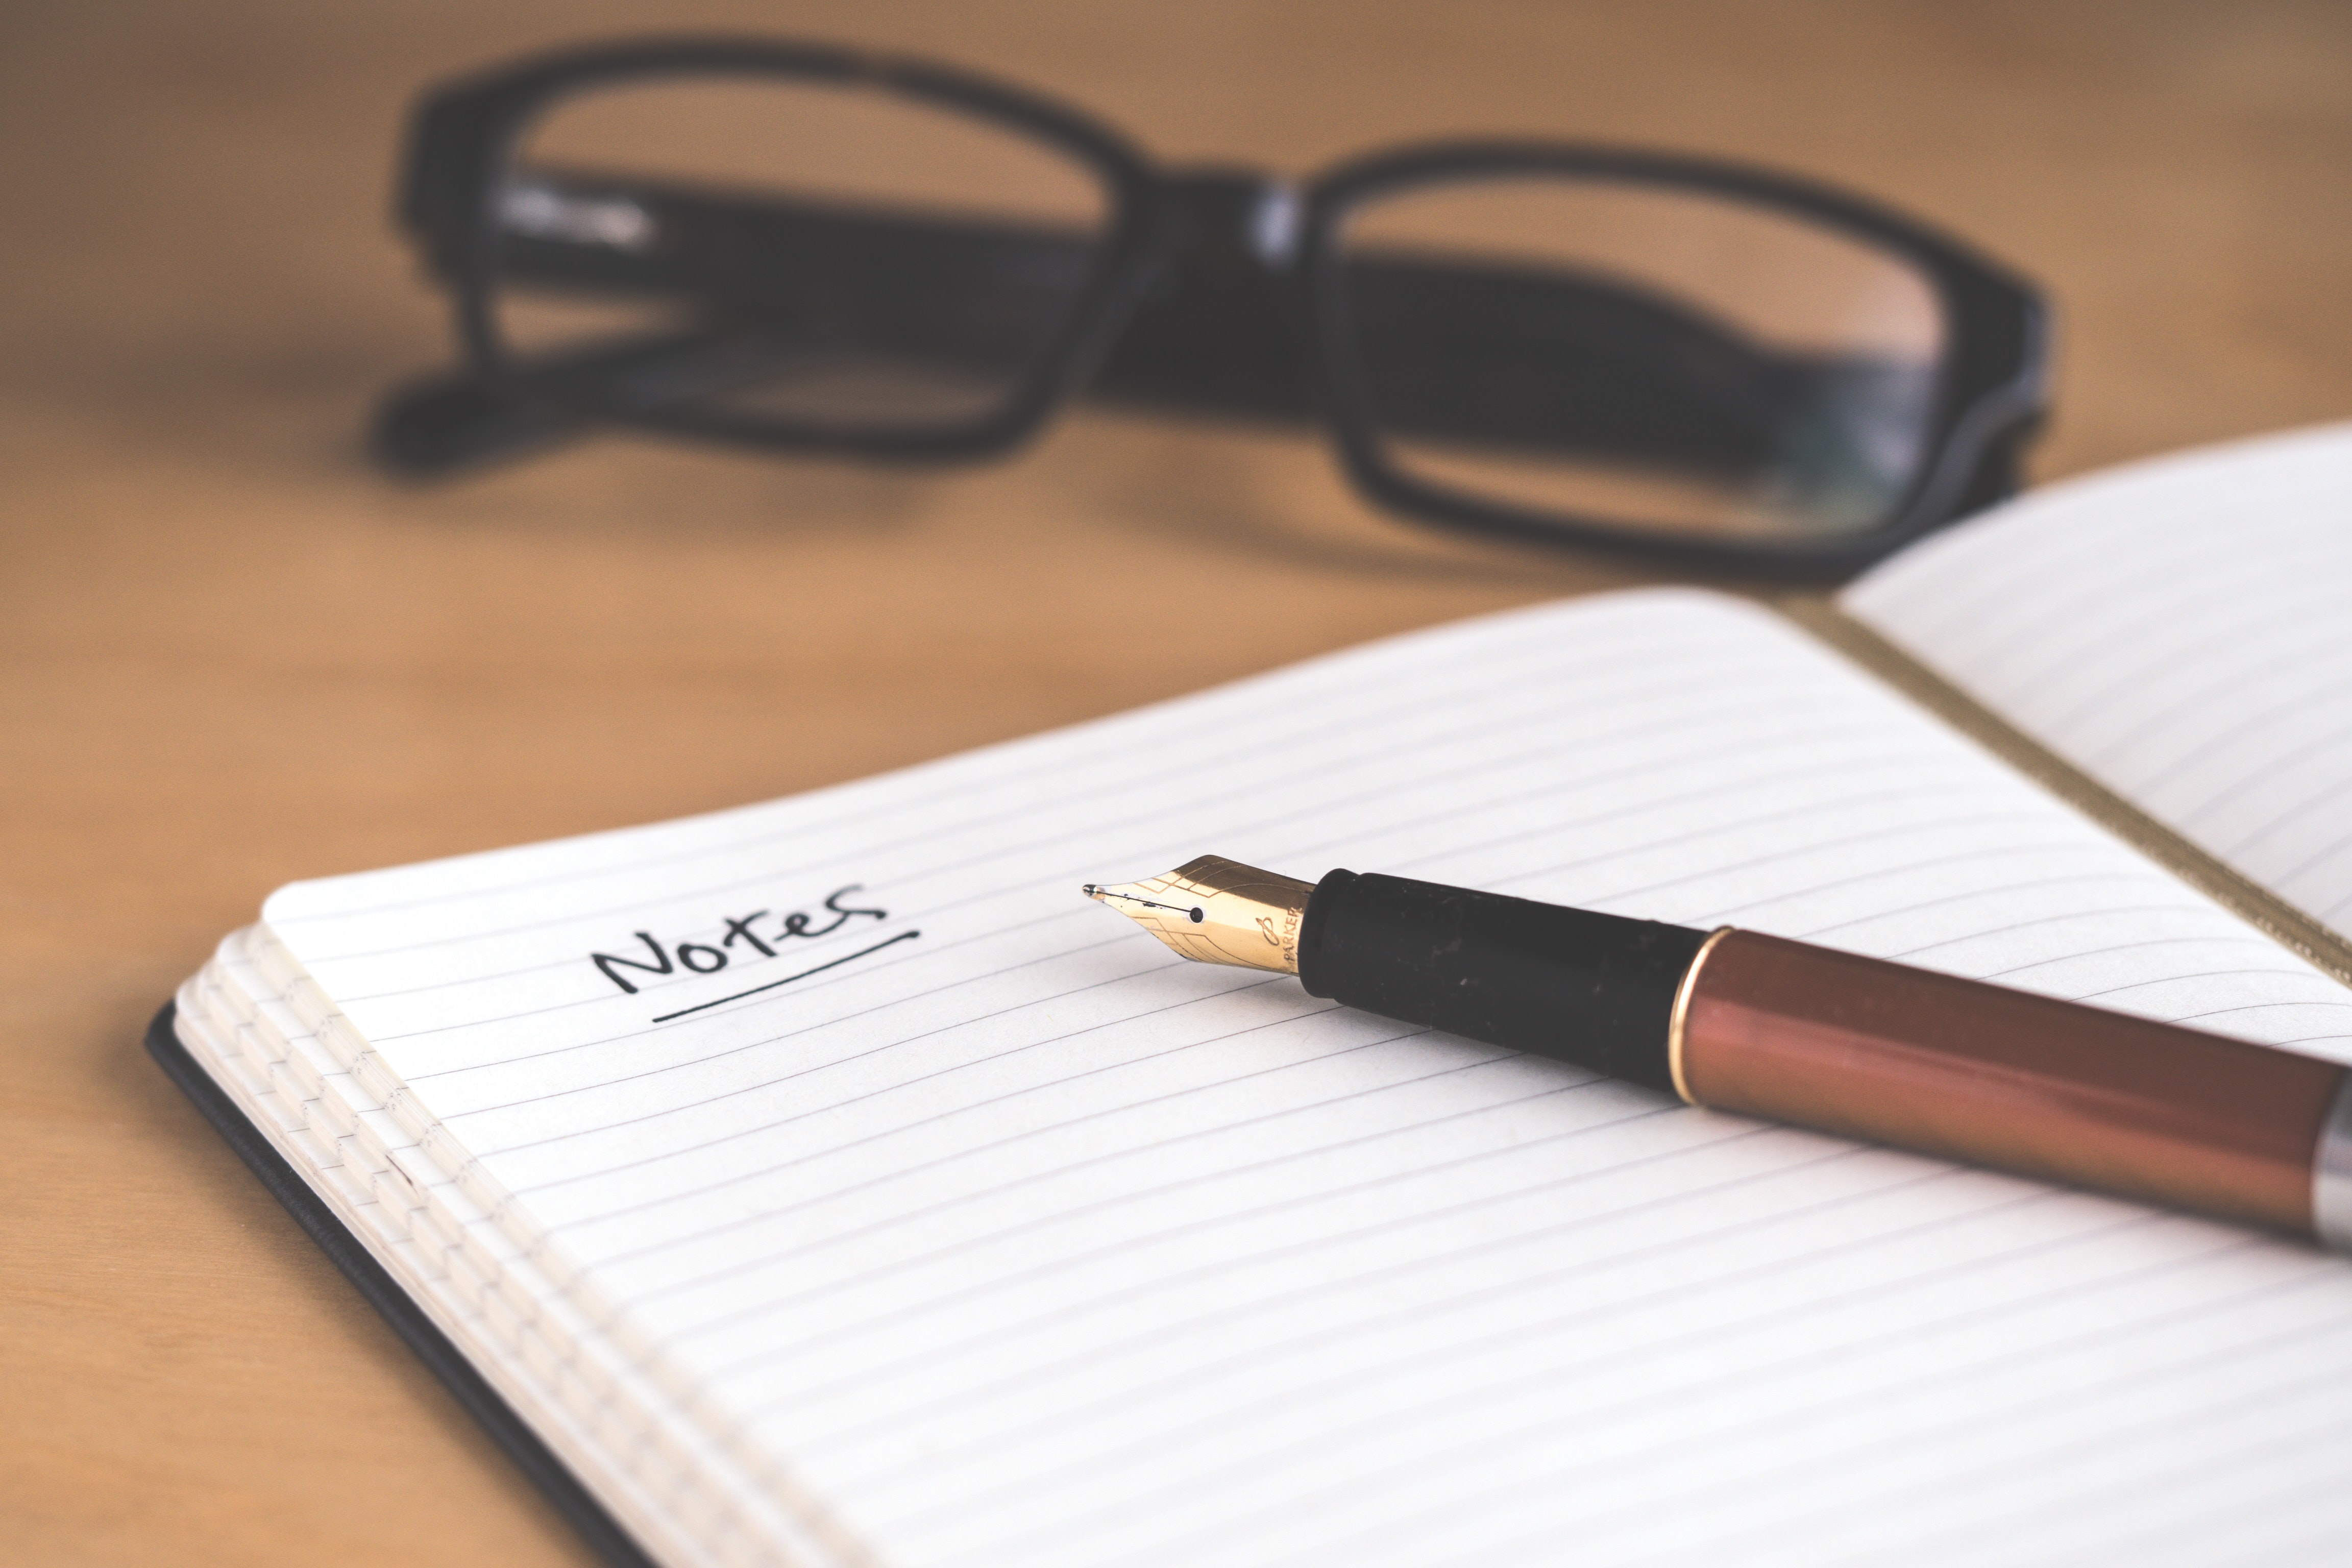 Taking notes during meetings or interviews is critical, but can be challenging. Here are 8 principles for quick and effective note-taking, including highlighting and reviewing.